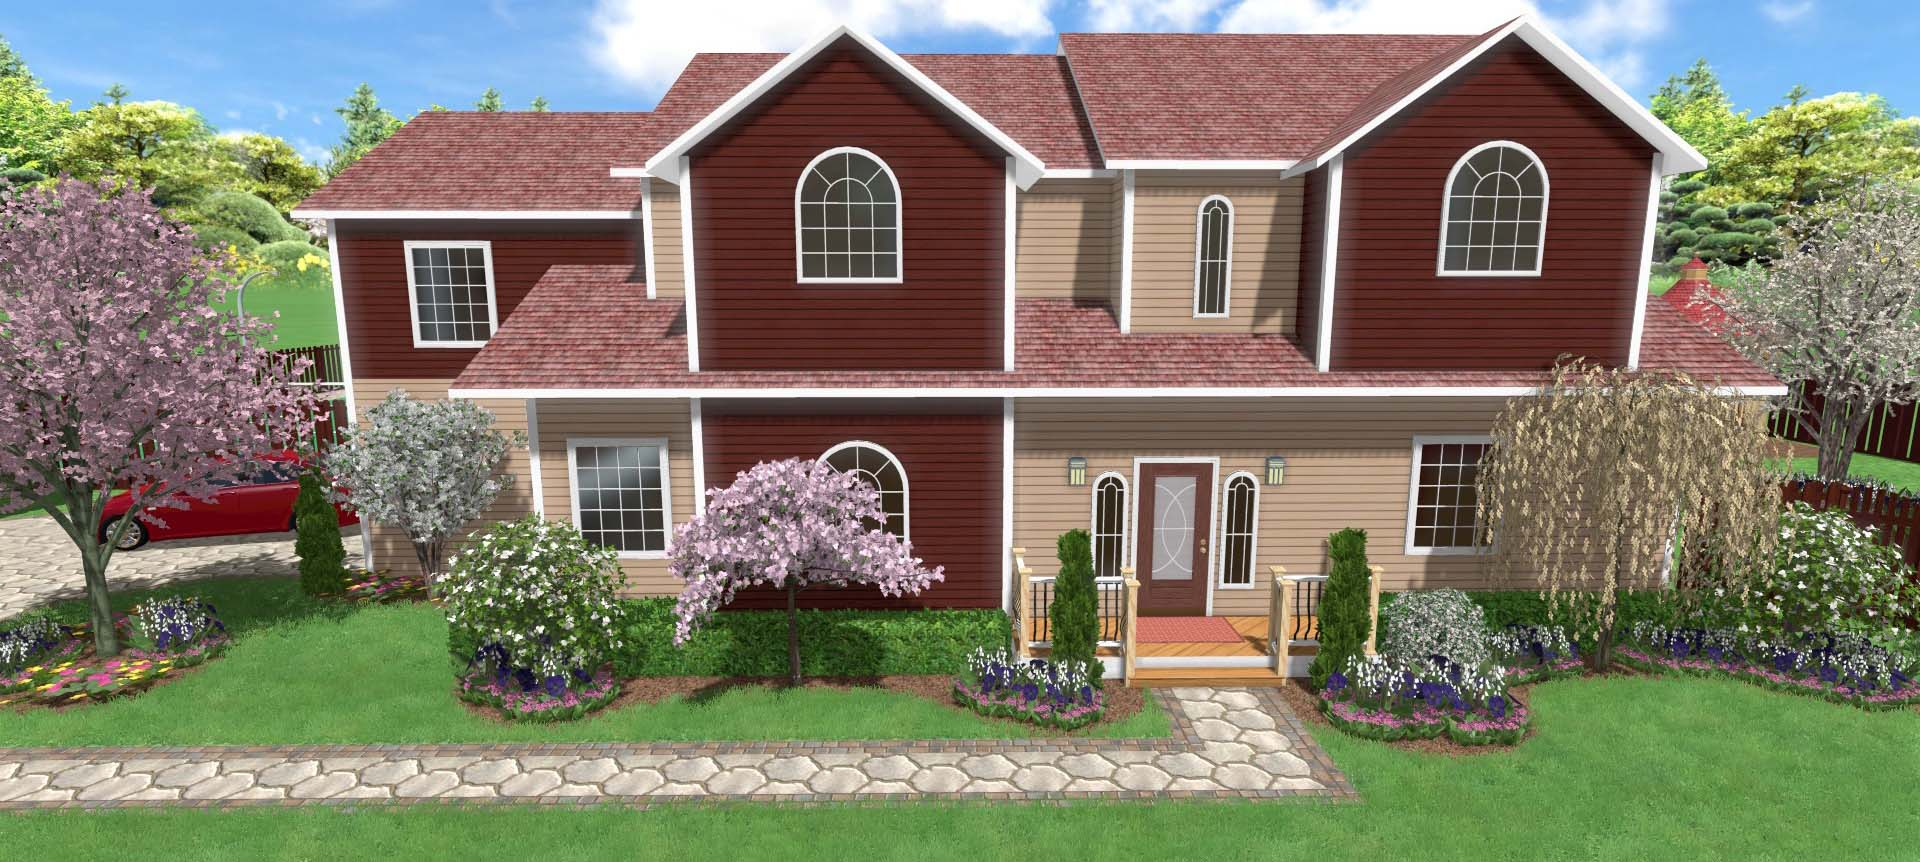 Home landscaping software for Holiday home garden design